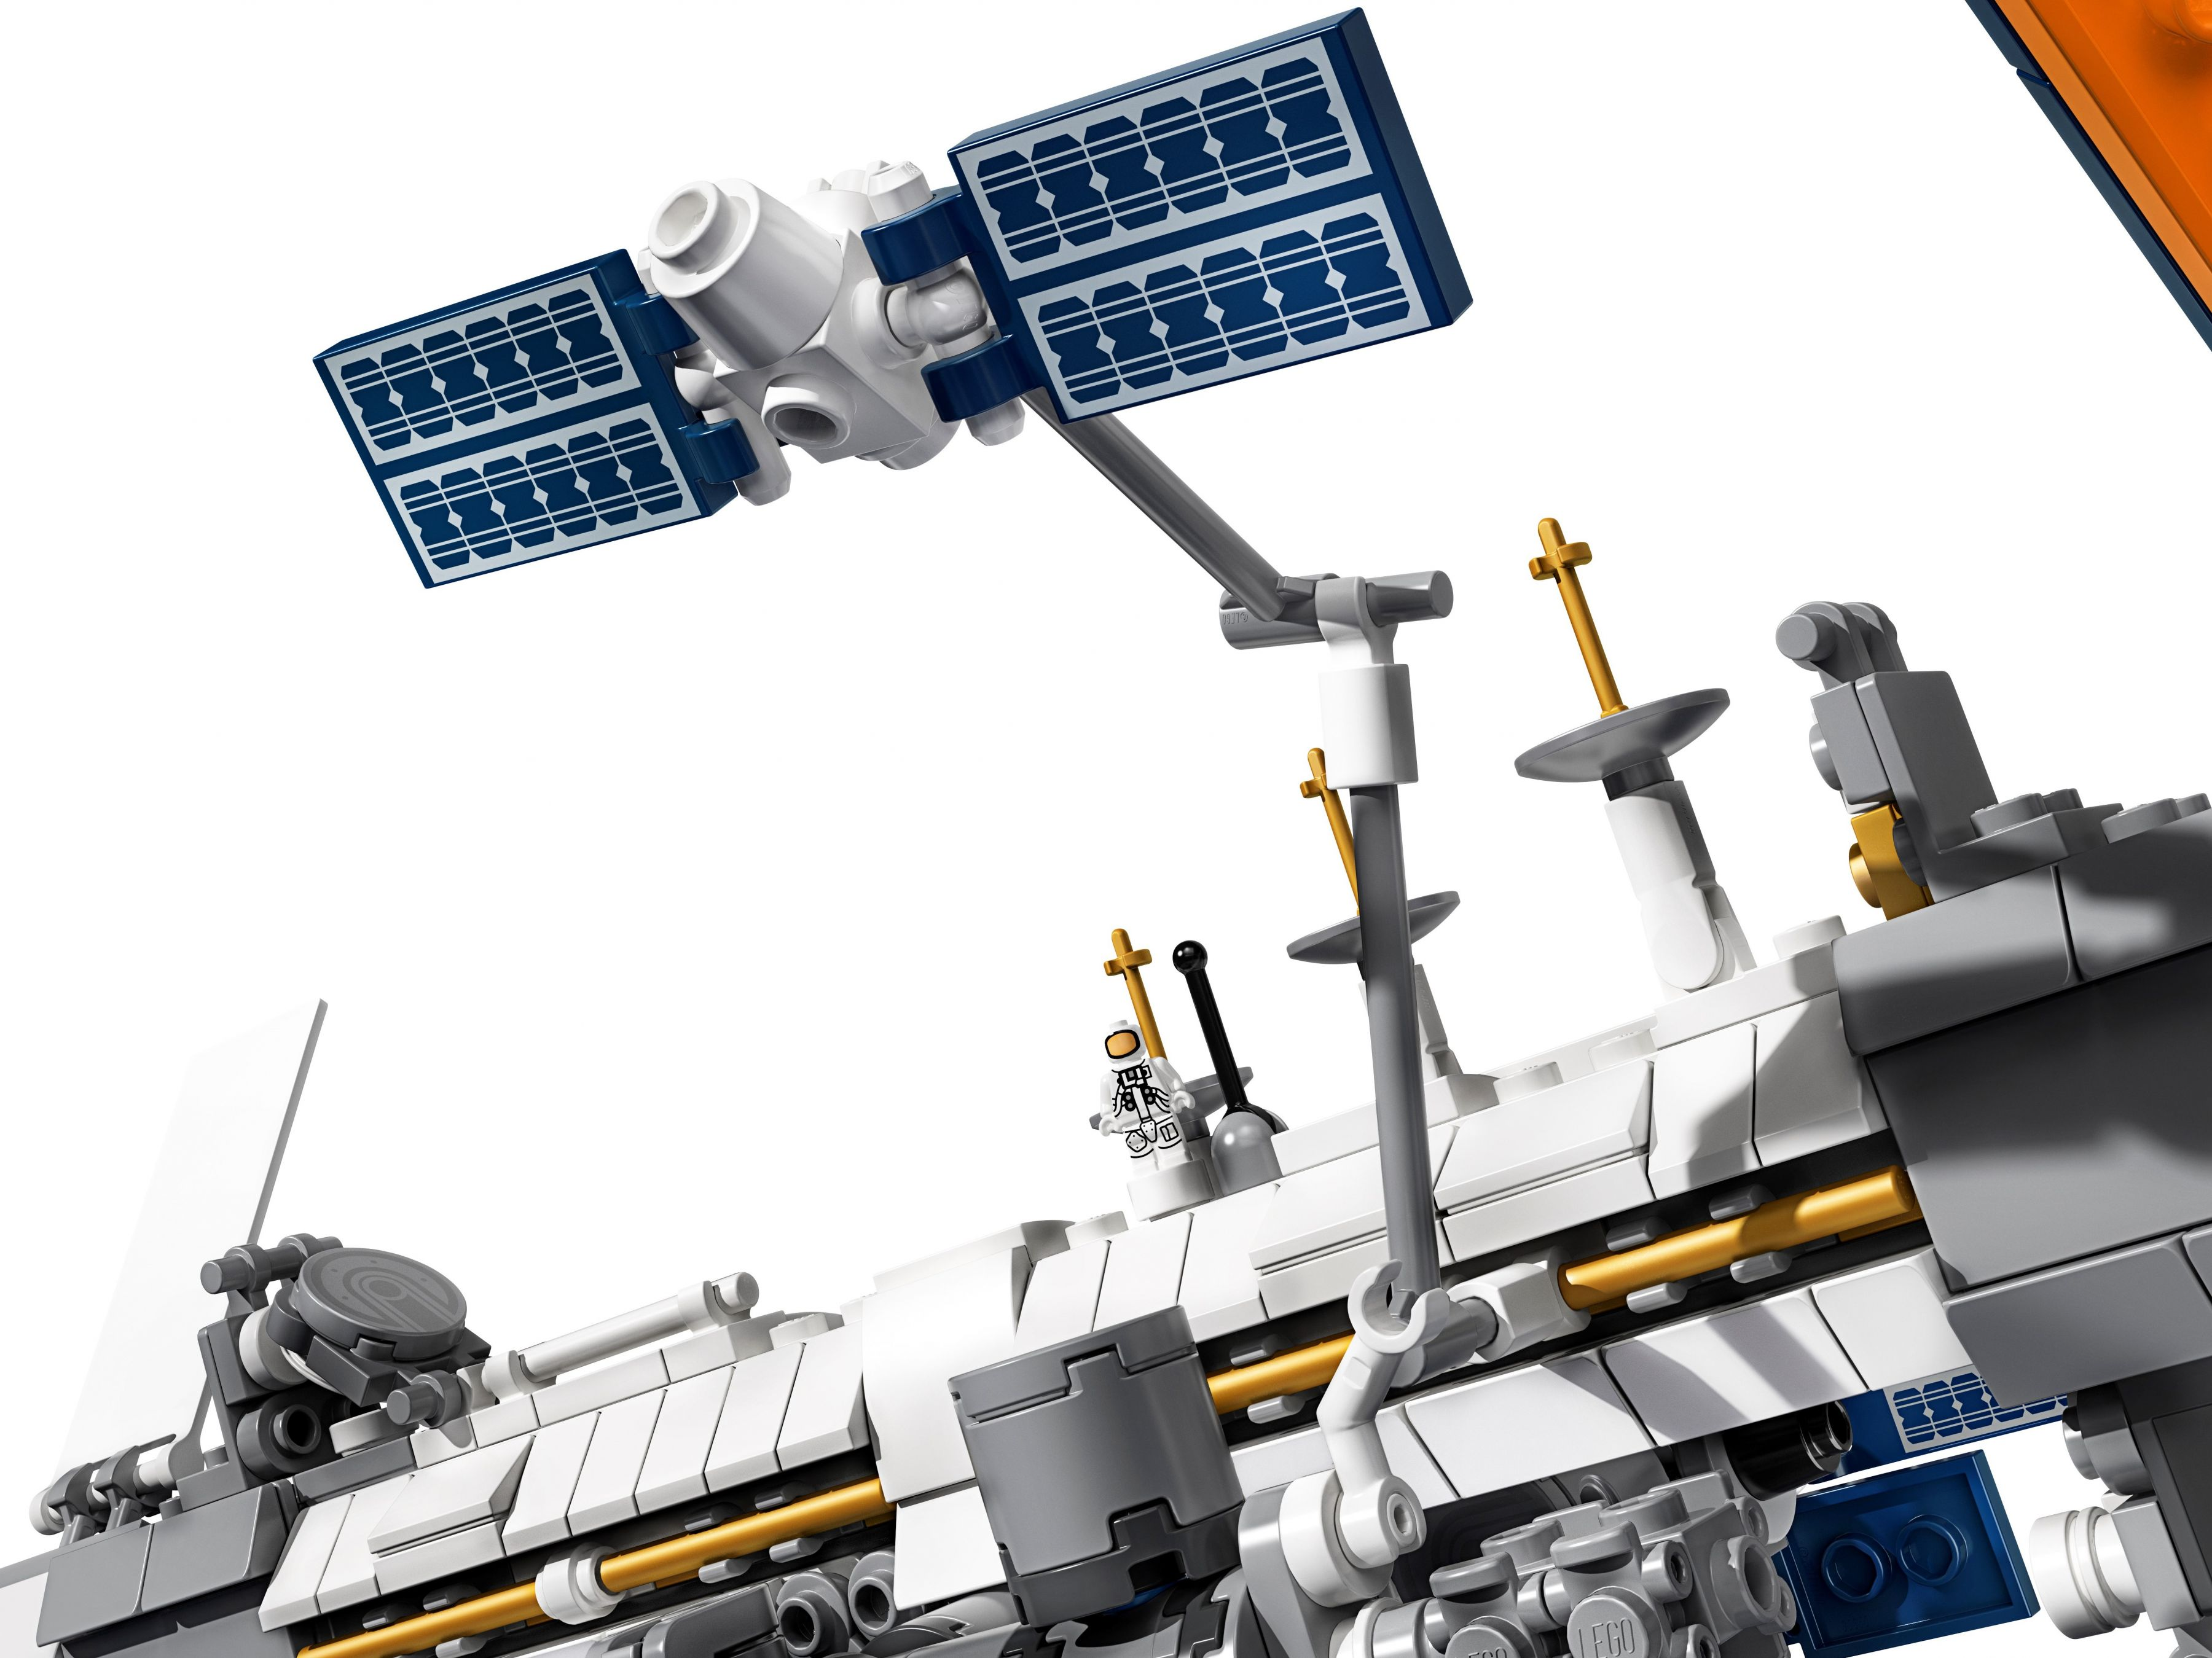 LEGO Ideas 21321 Internationale Raumstation LEGO_21321_alt5.jpg